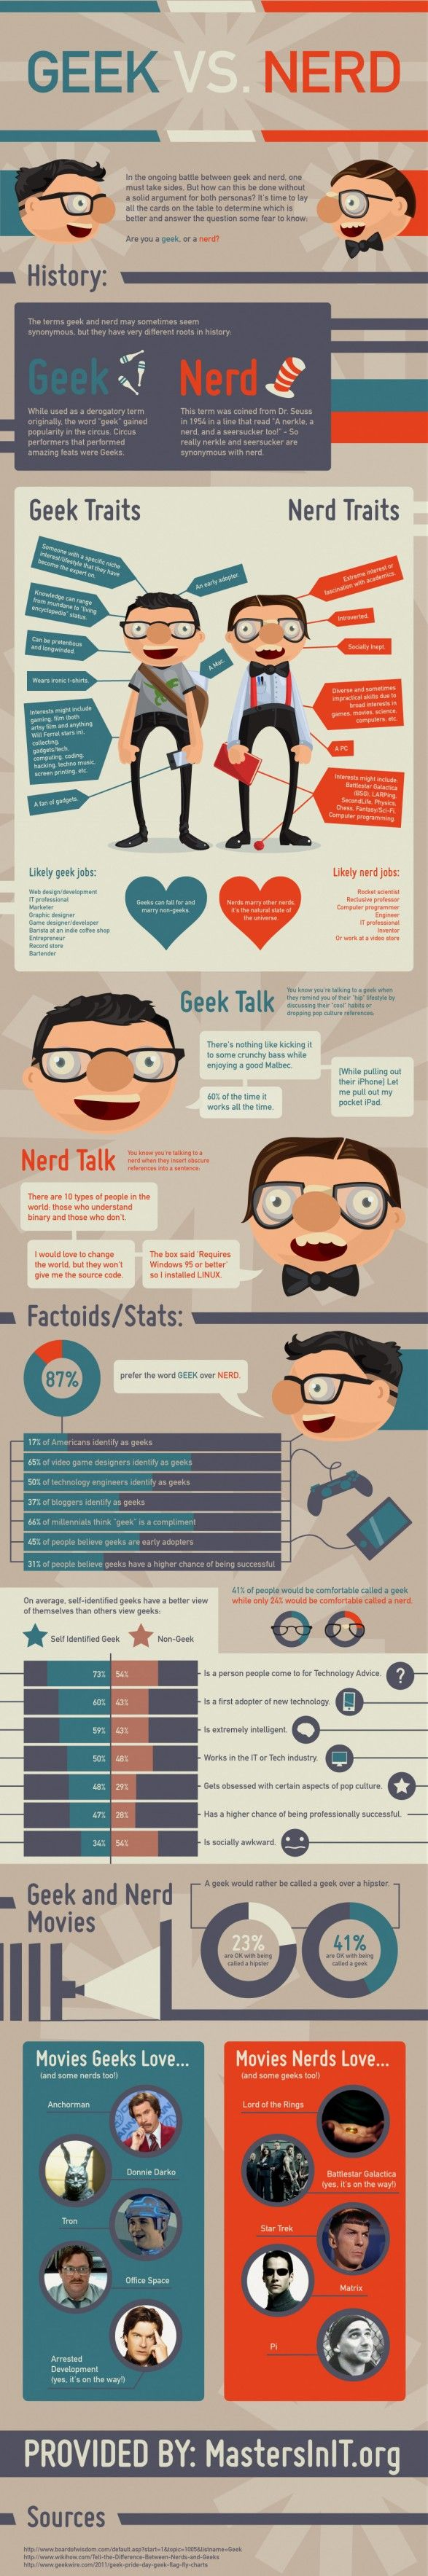 Are you a geek or nerd? Take the test